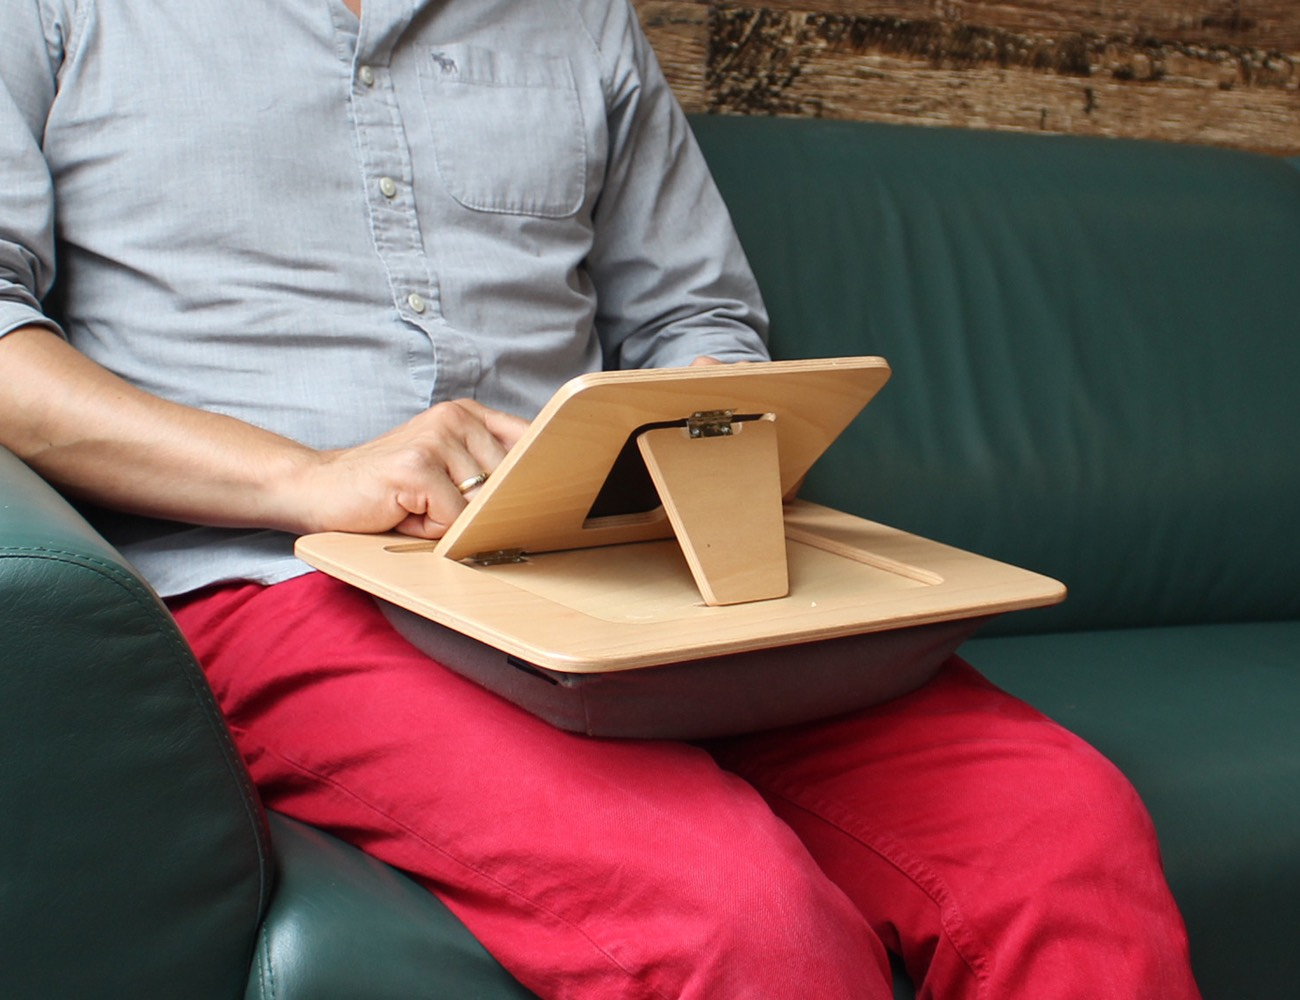 Padtopper – 3-in-1 Ergonomic Lapdesk